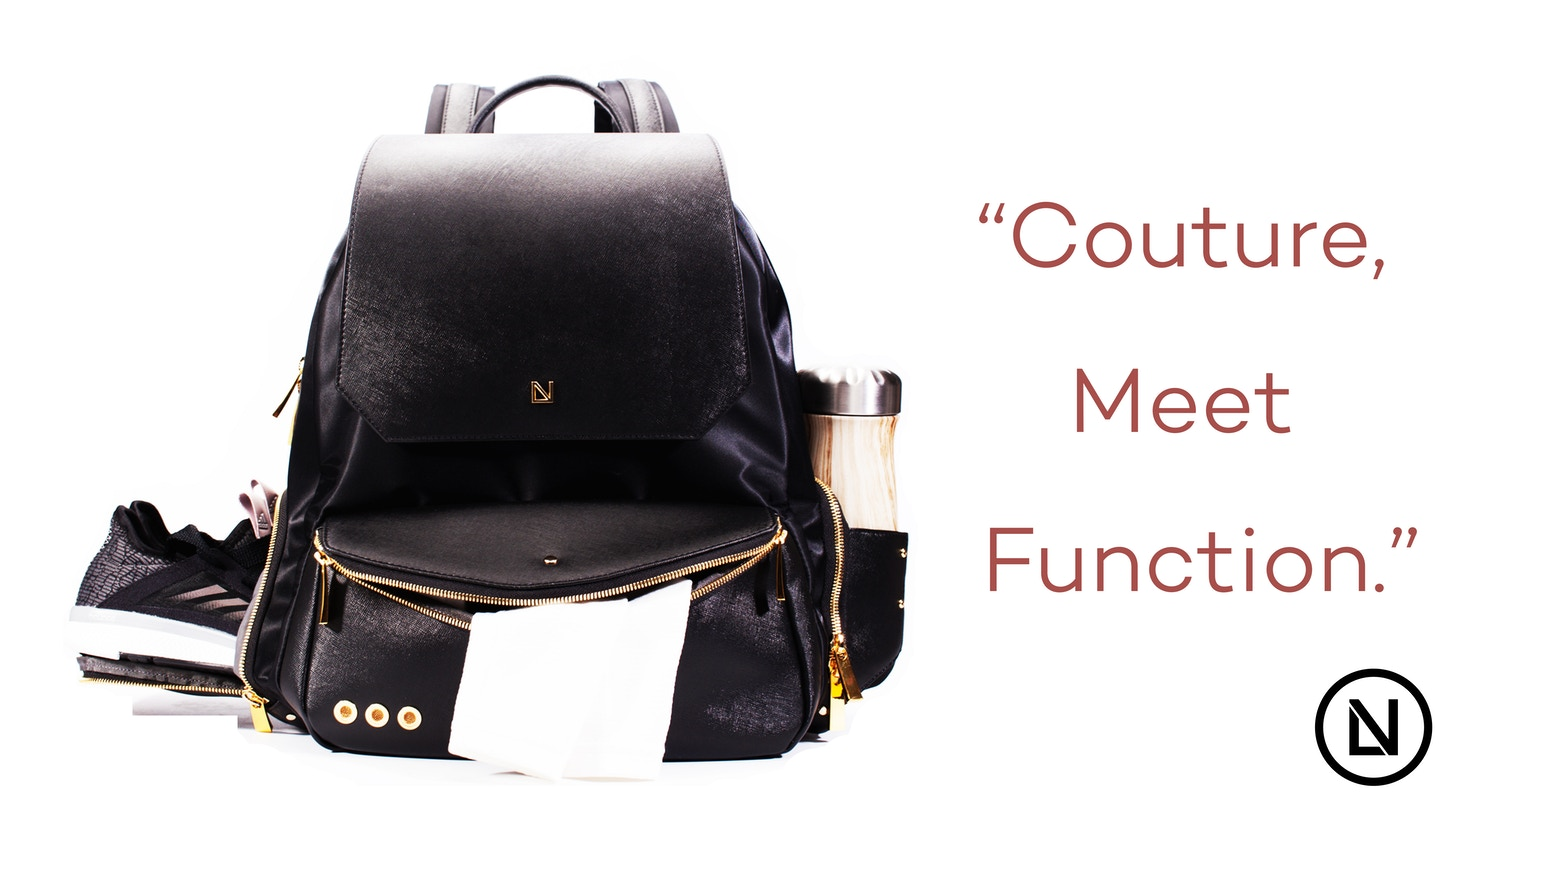 1588c8f1b83 Intelligent Designer Bags without the Luxury Mark Up. Handmade + Eco. You  Are The